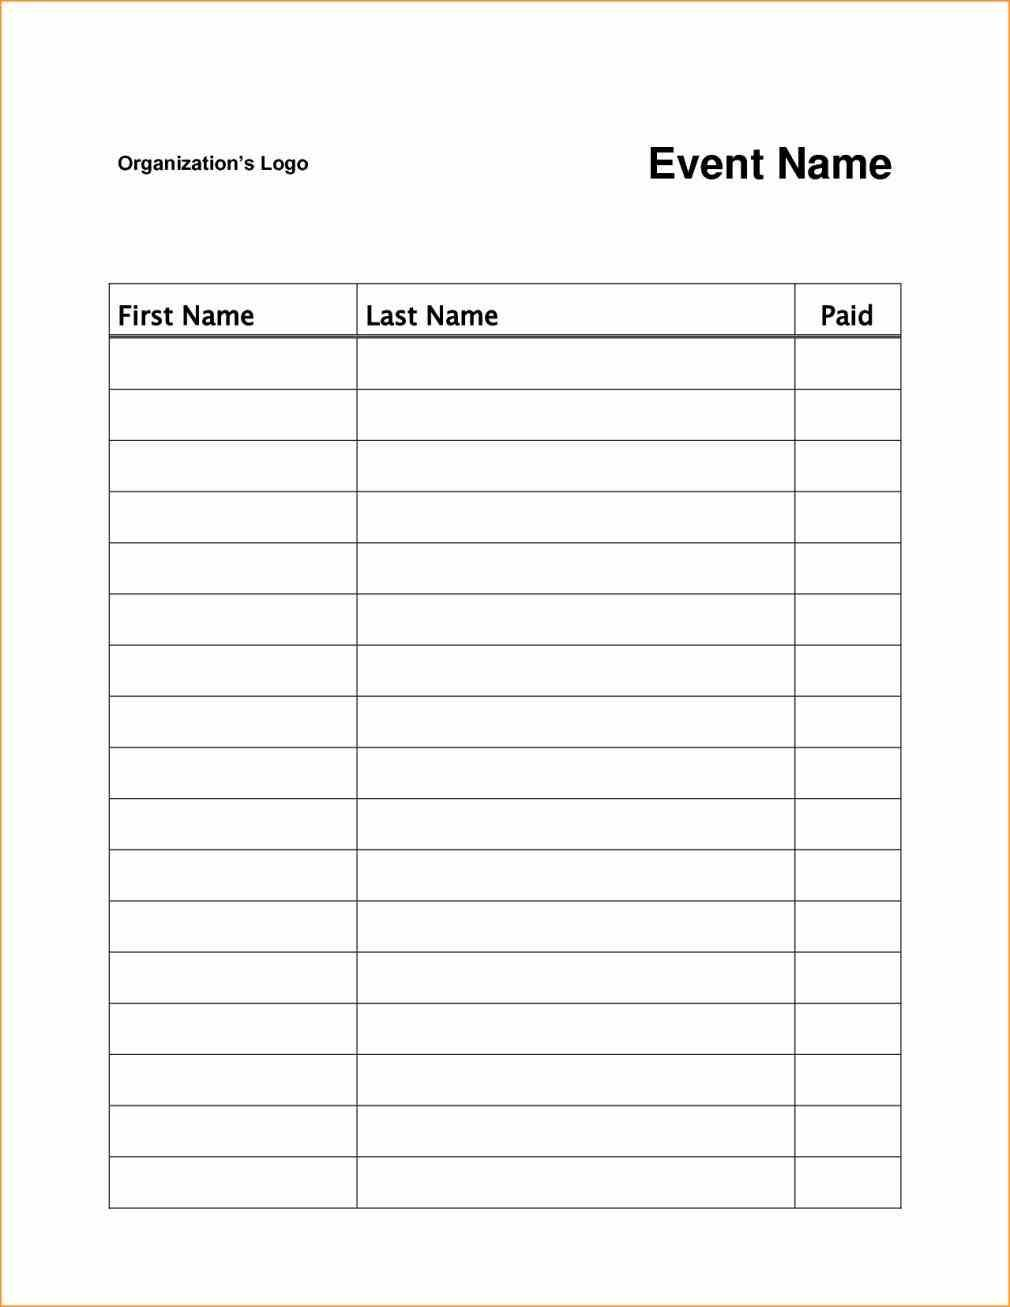 Event Or Class Workshop Forms A Sign Up Sheet Template Word Throughout Free Sign Up Sheet Template Word